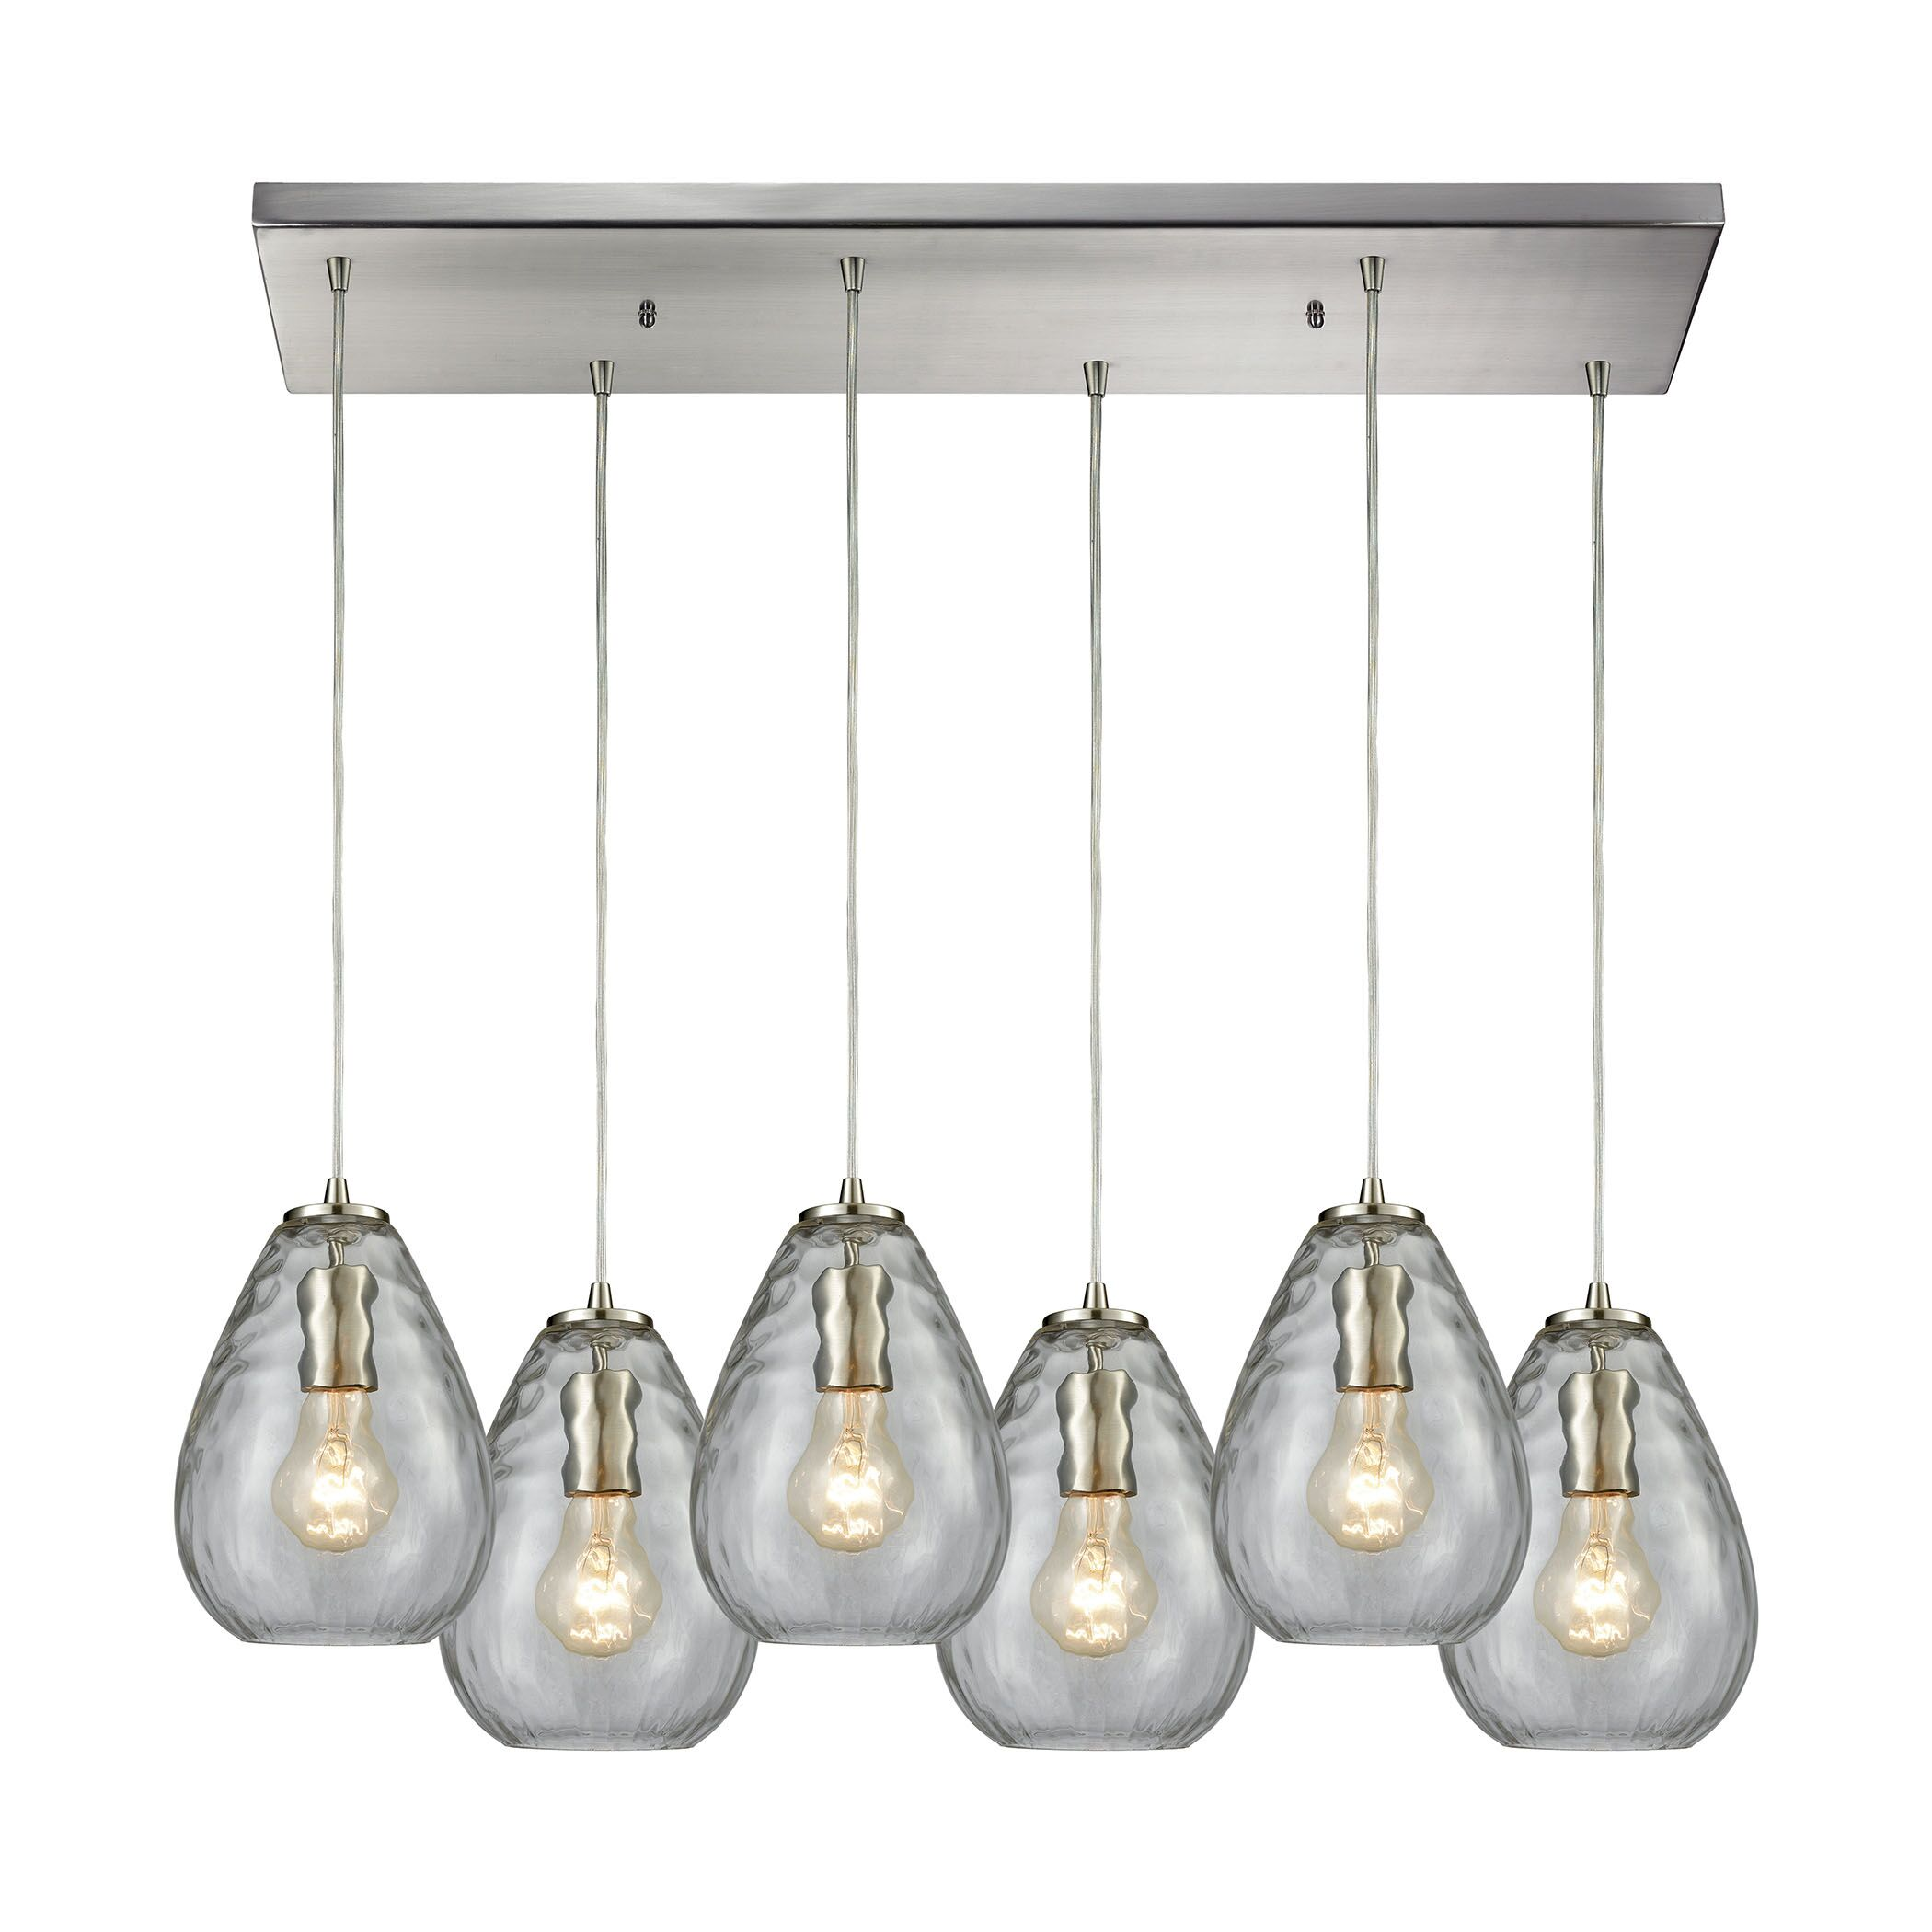 Bradsher Rectangle 6-Light Kitchen Island Pendant Finish: Satin Nickel/Clear